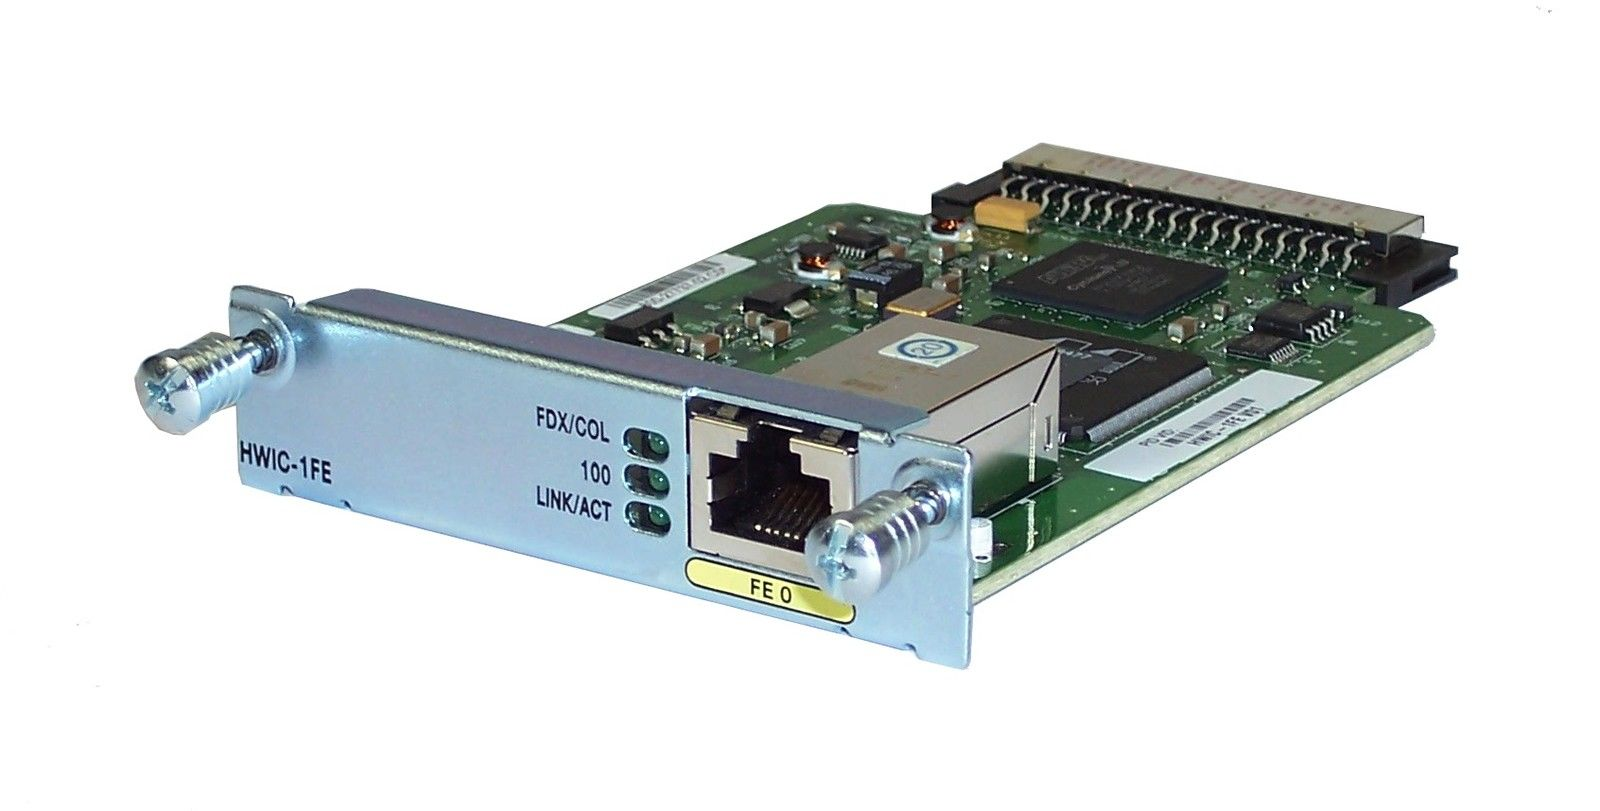 Original HWIC-1FE Router 1 Ethernet Port Module